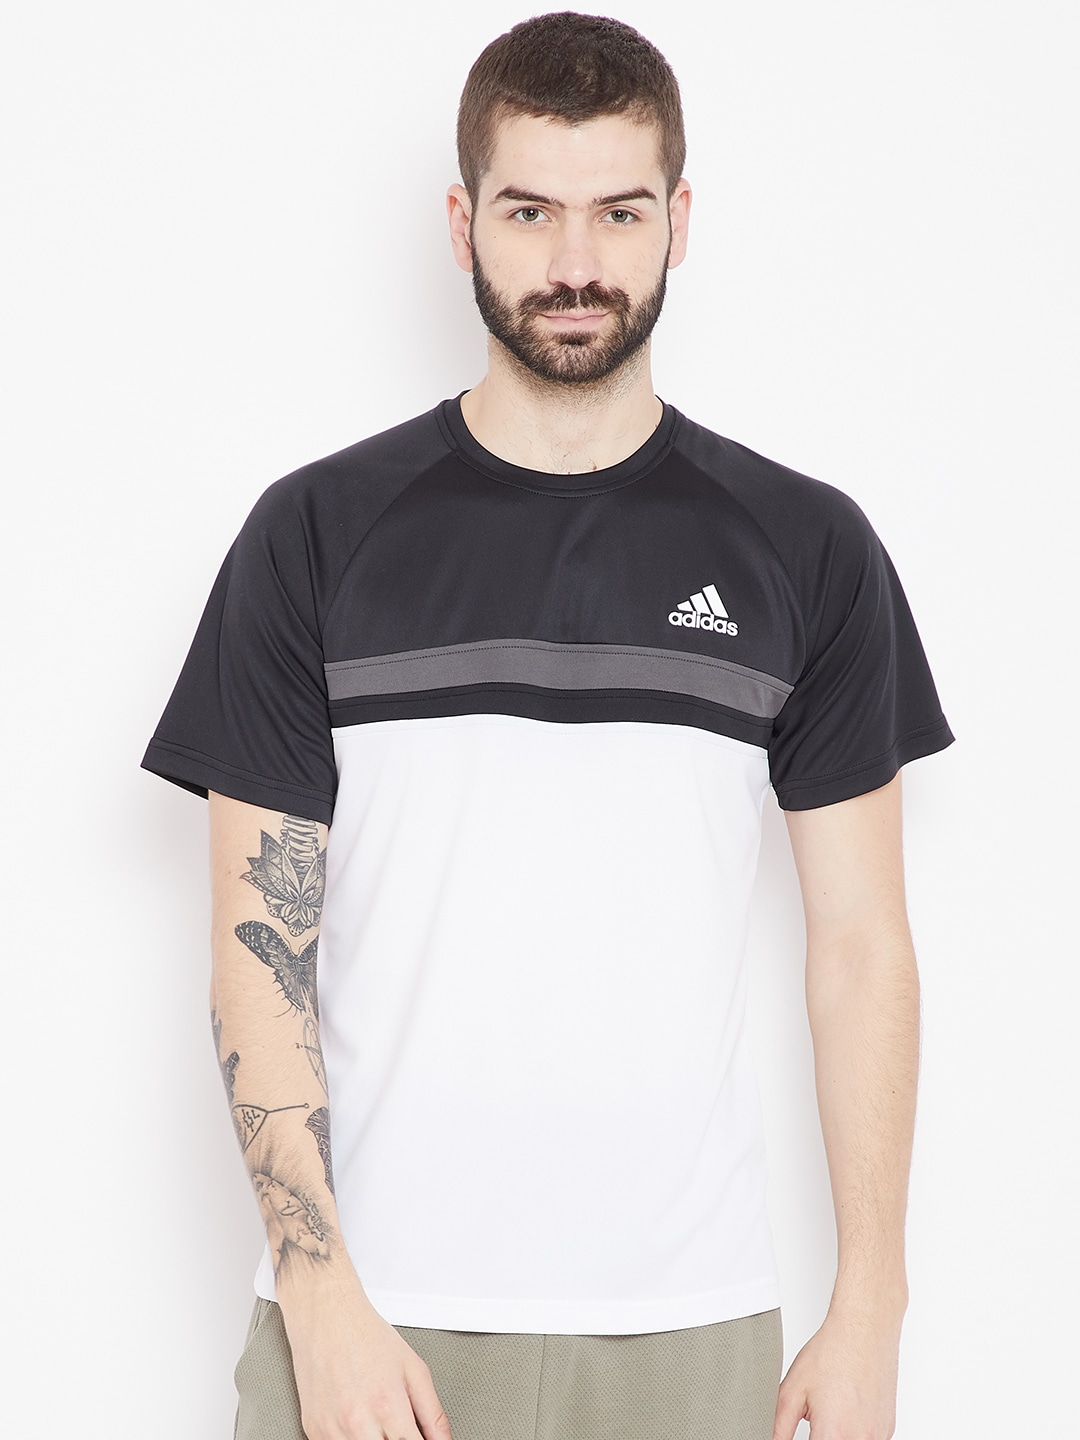 Adidas Neck Tshirts - Buy Adidas Neck Tshirts online in India